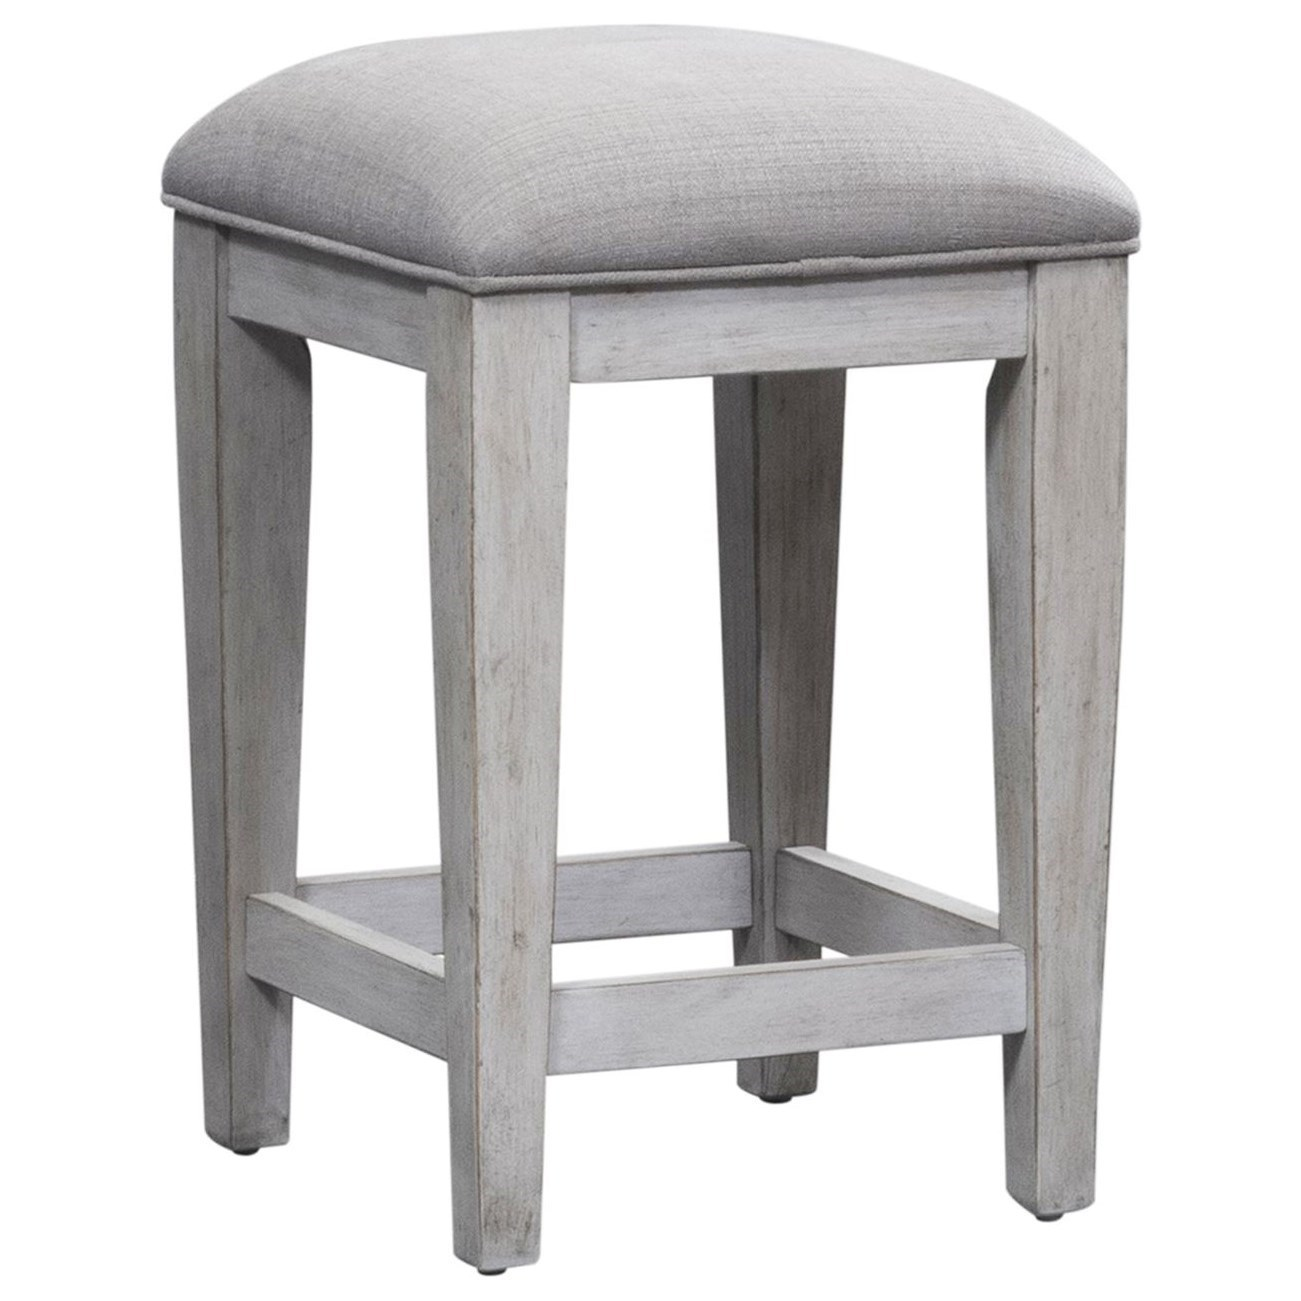 Haven Upholstered Counter Height Stool by Libby at Walker's Furniture